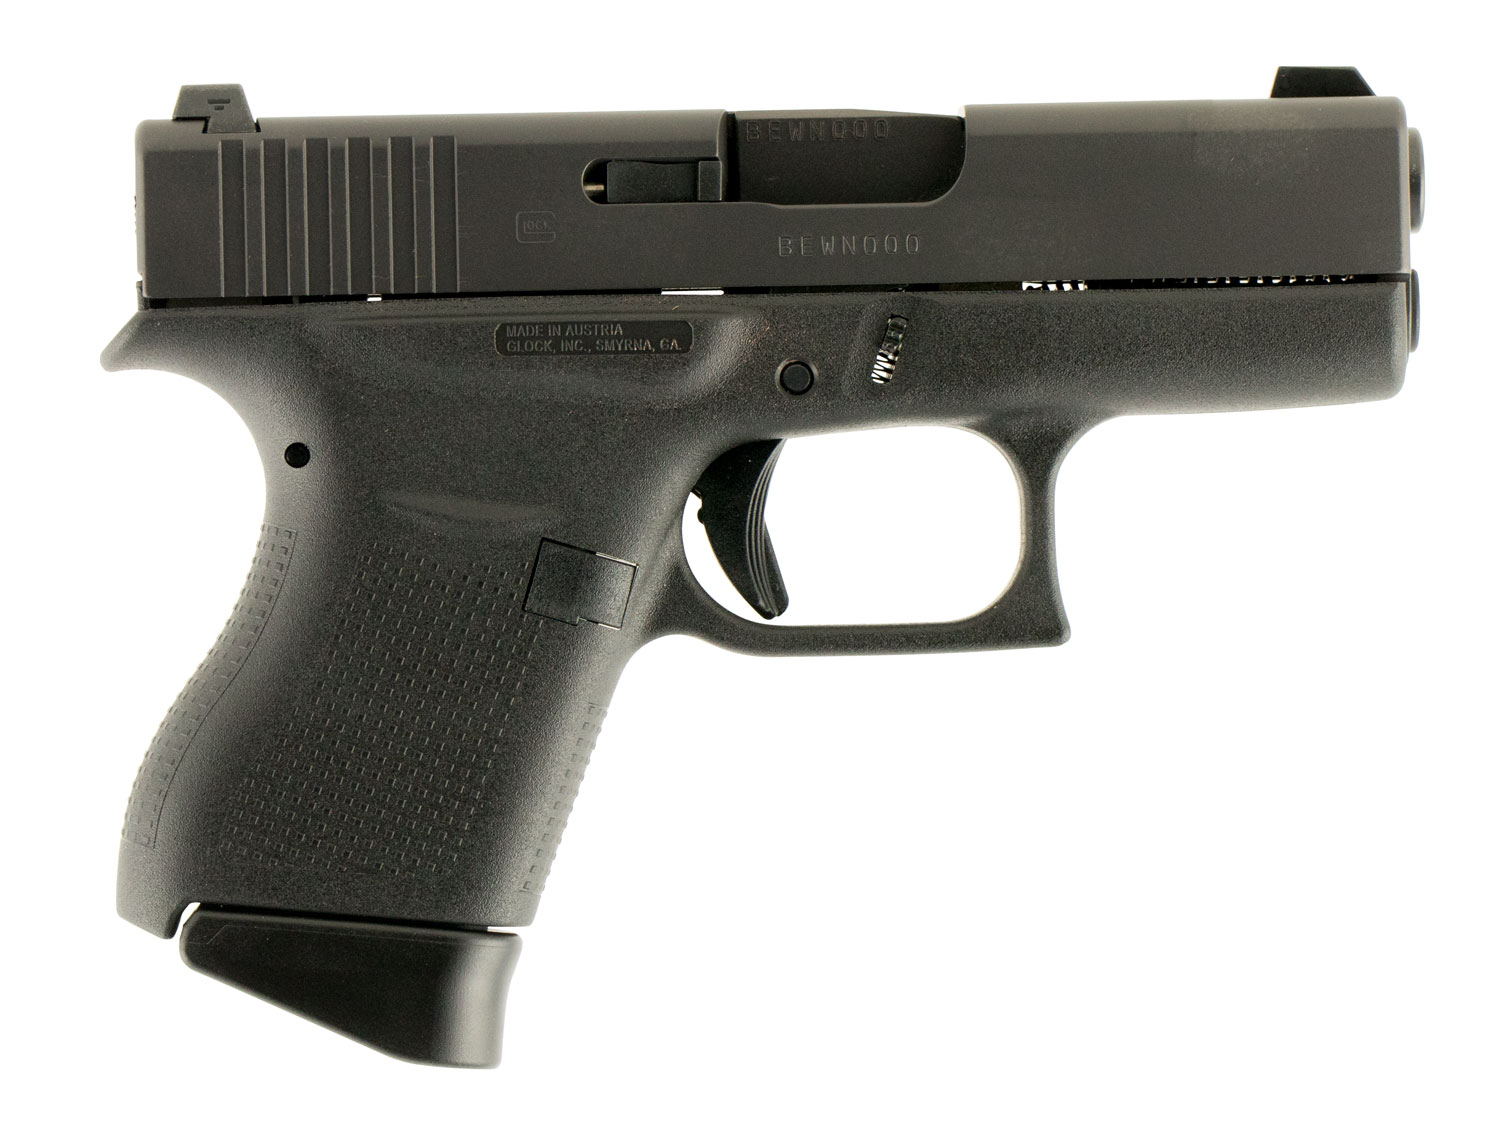 Glock PN4350701 G43 Subcompact Double 9mm Luger 6+1 GNS Black Polymer Grip/Frame Grip Black